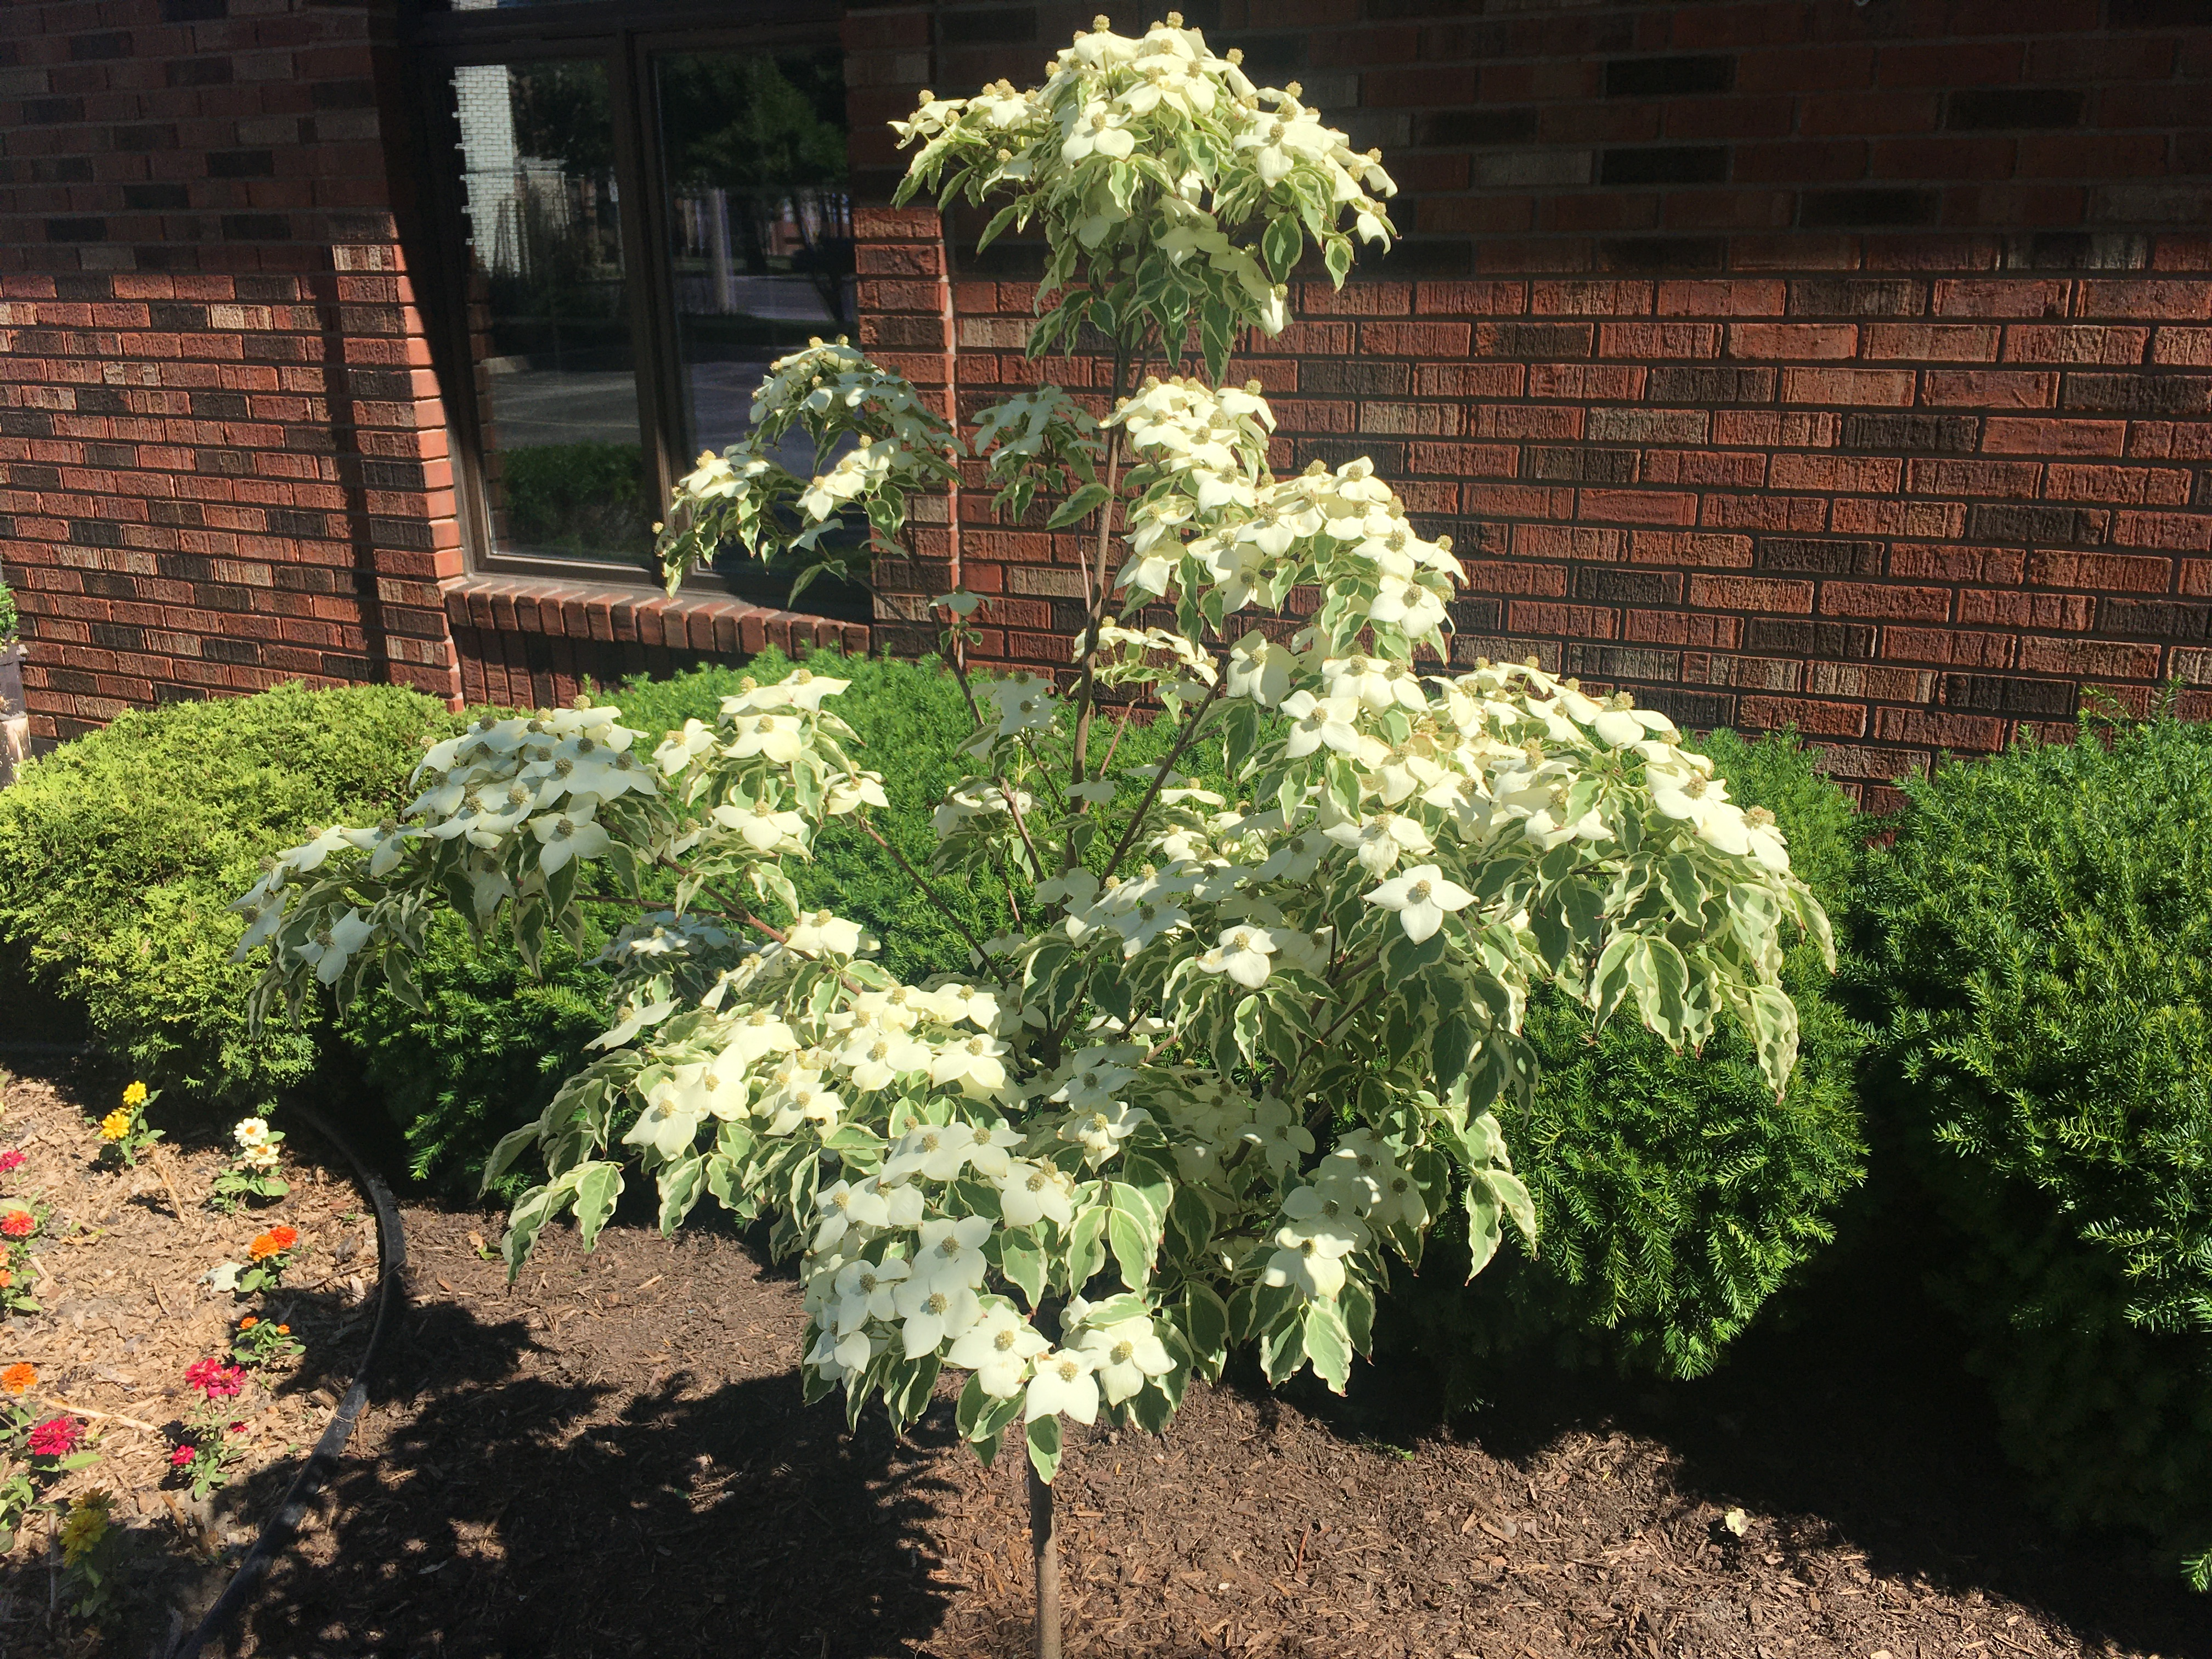 Samaritan Dogwood planted in honour of Archdeacon Ron's 90th birthday - photo taken on June 14, 2020